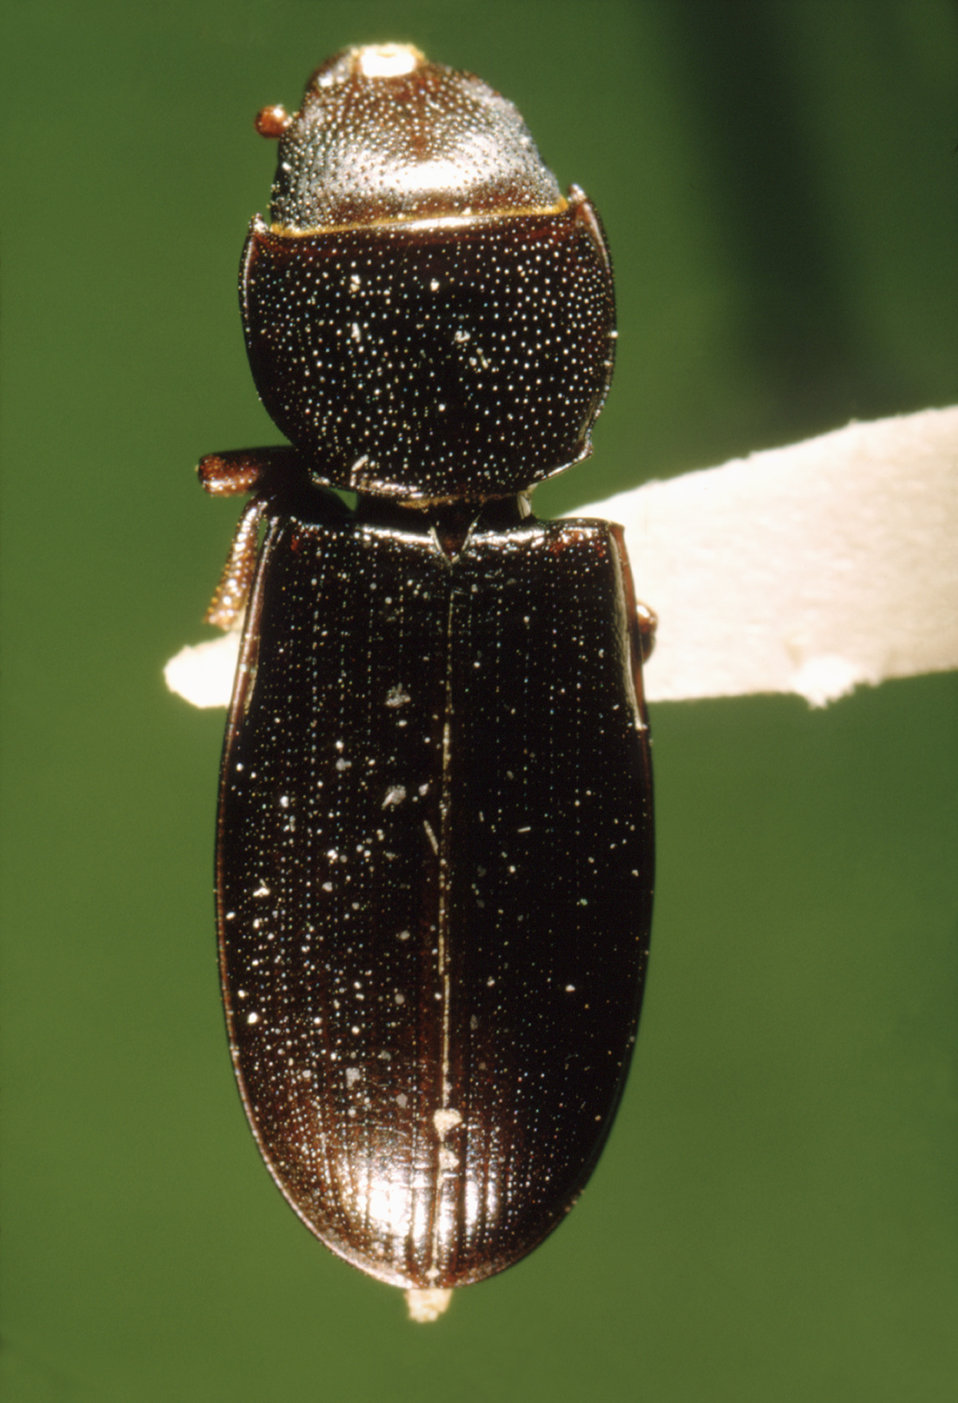 This ia a dorsal view of a 'cadelle beetle', Tenebroides mauritanicus often found in grain silos and mills; Mag. 7.7X.